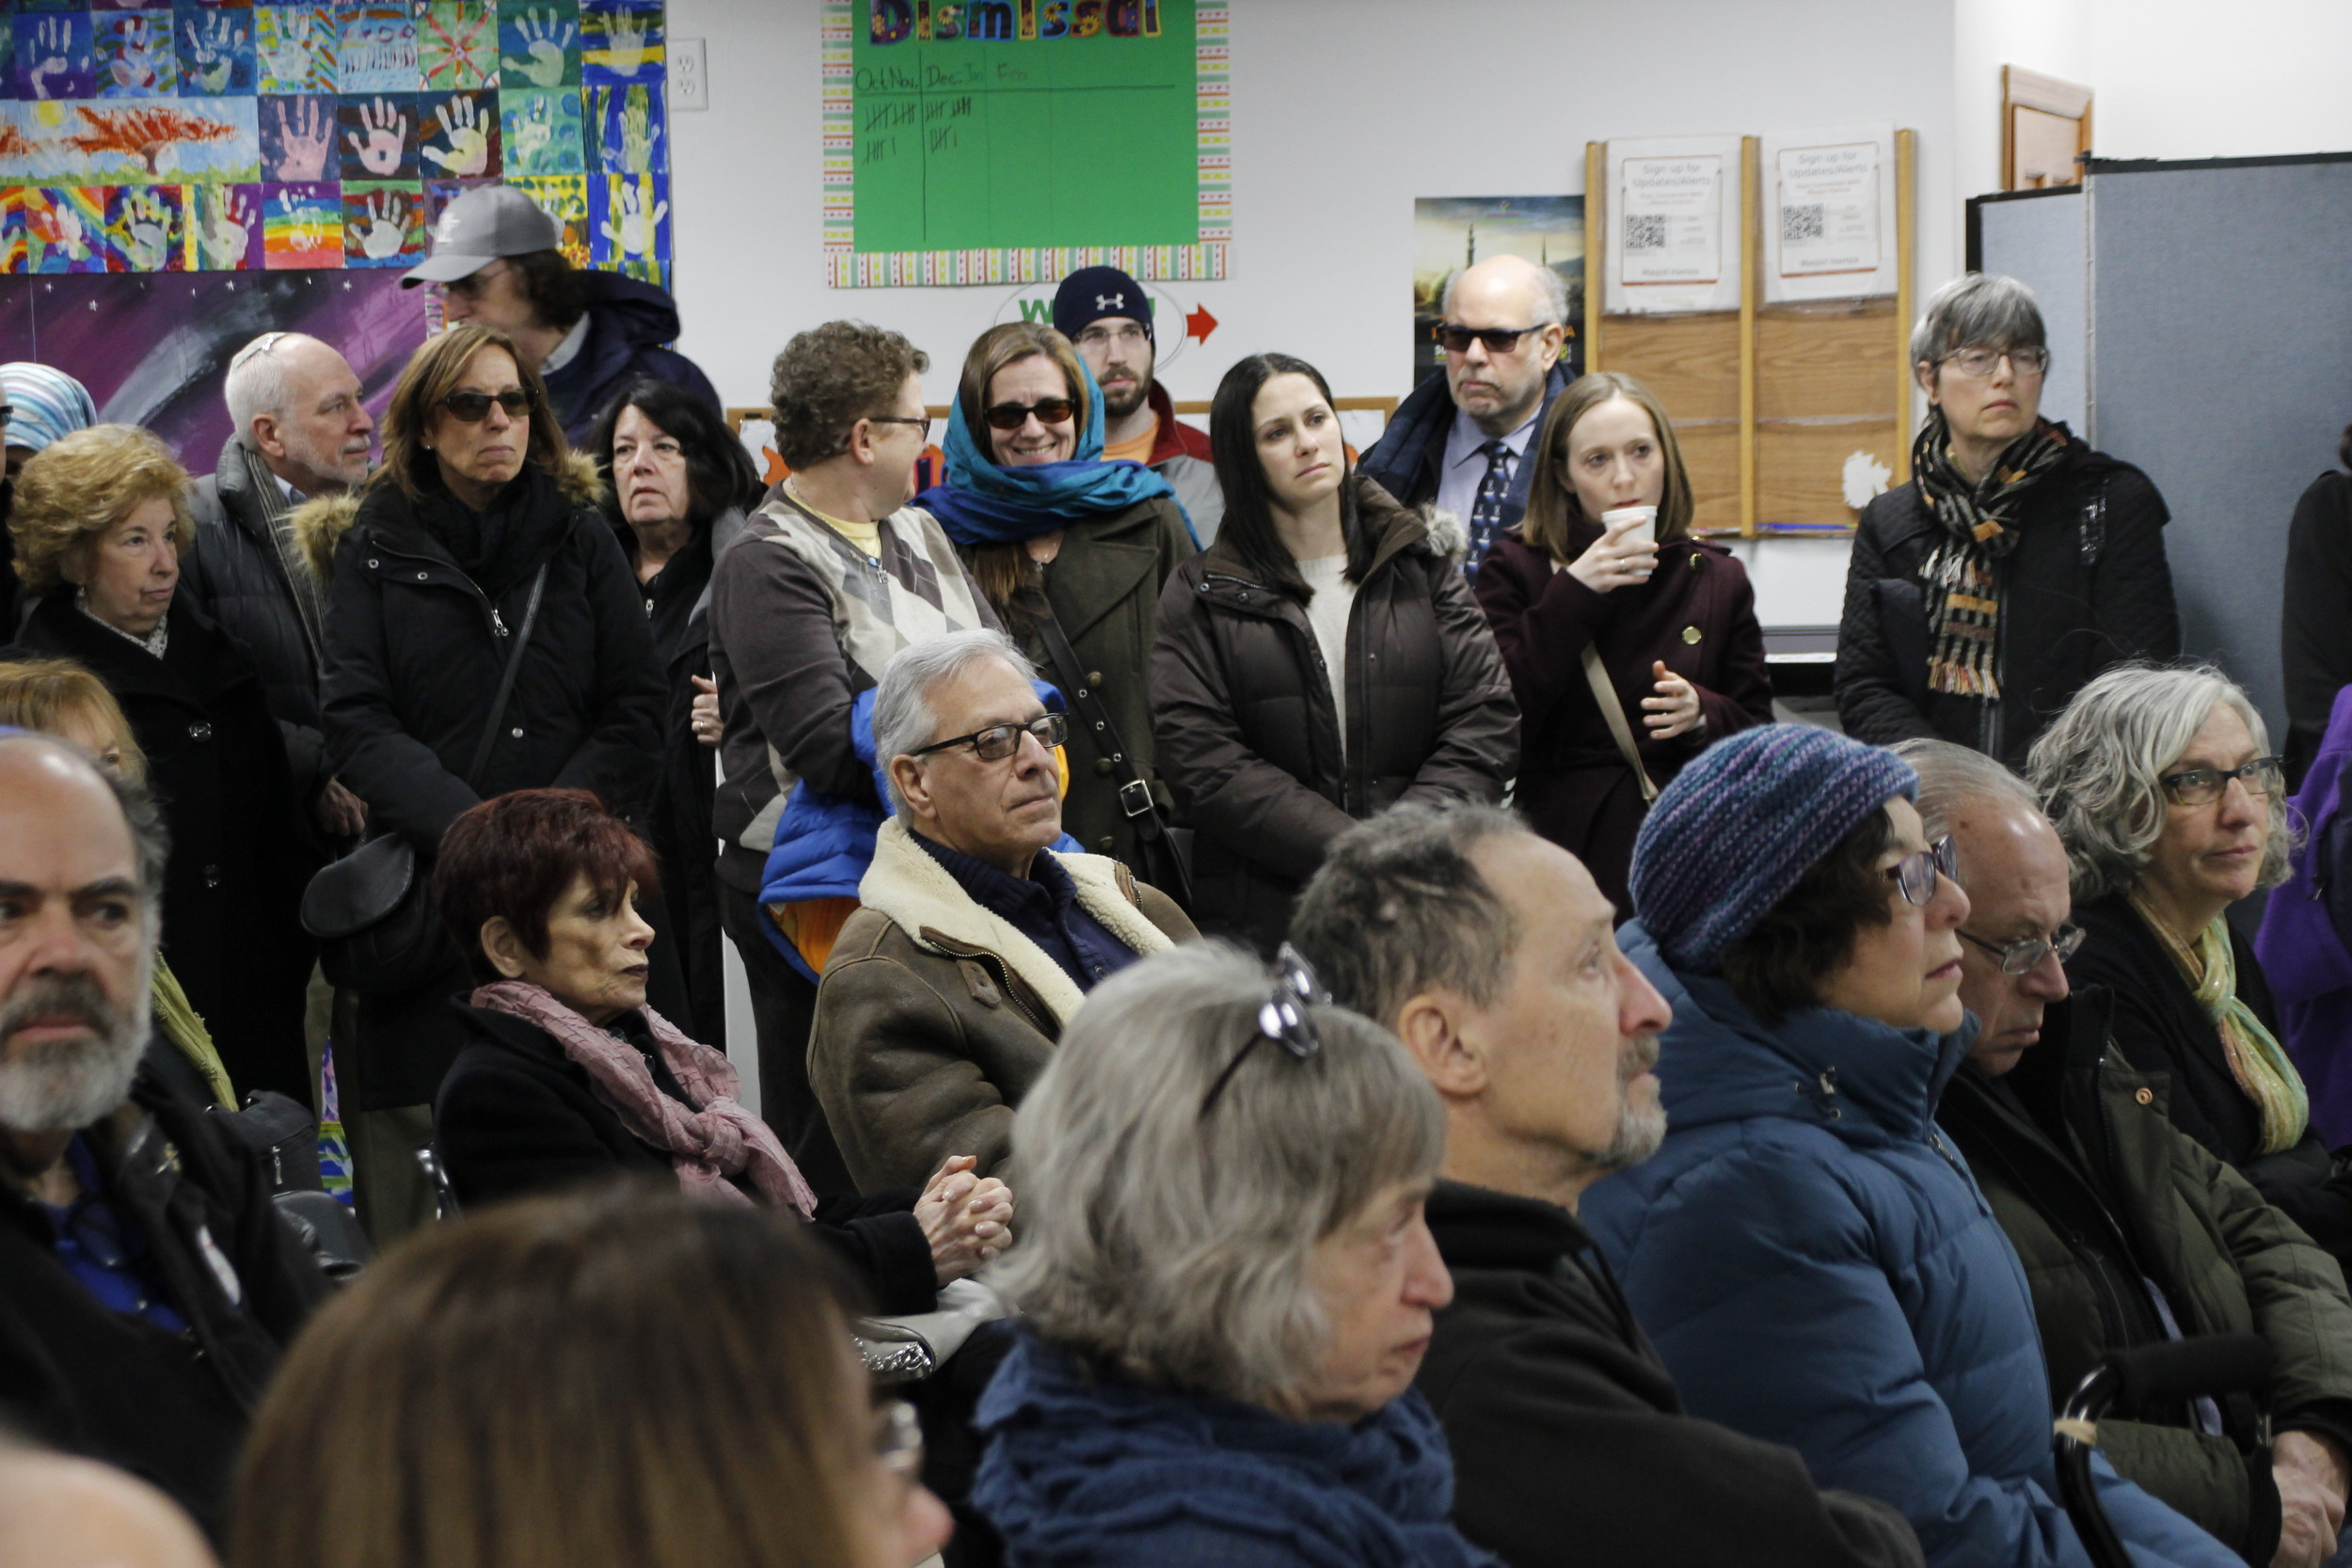 It was standing room only at Masjid Hamza Islamic Center of South Shore on Feb. 3.